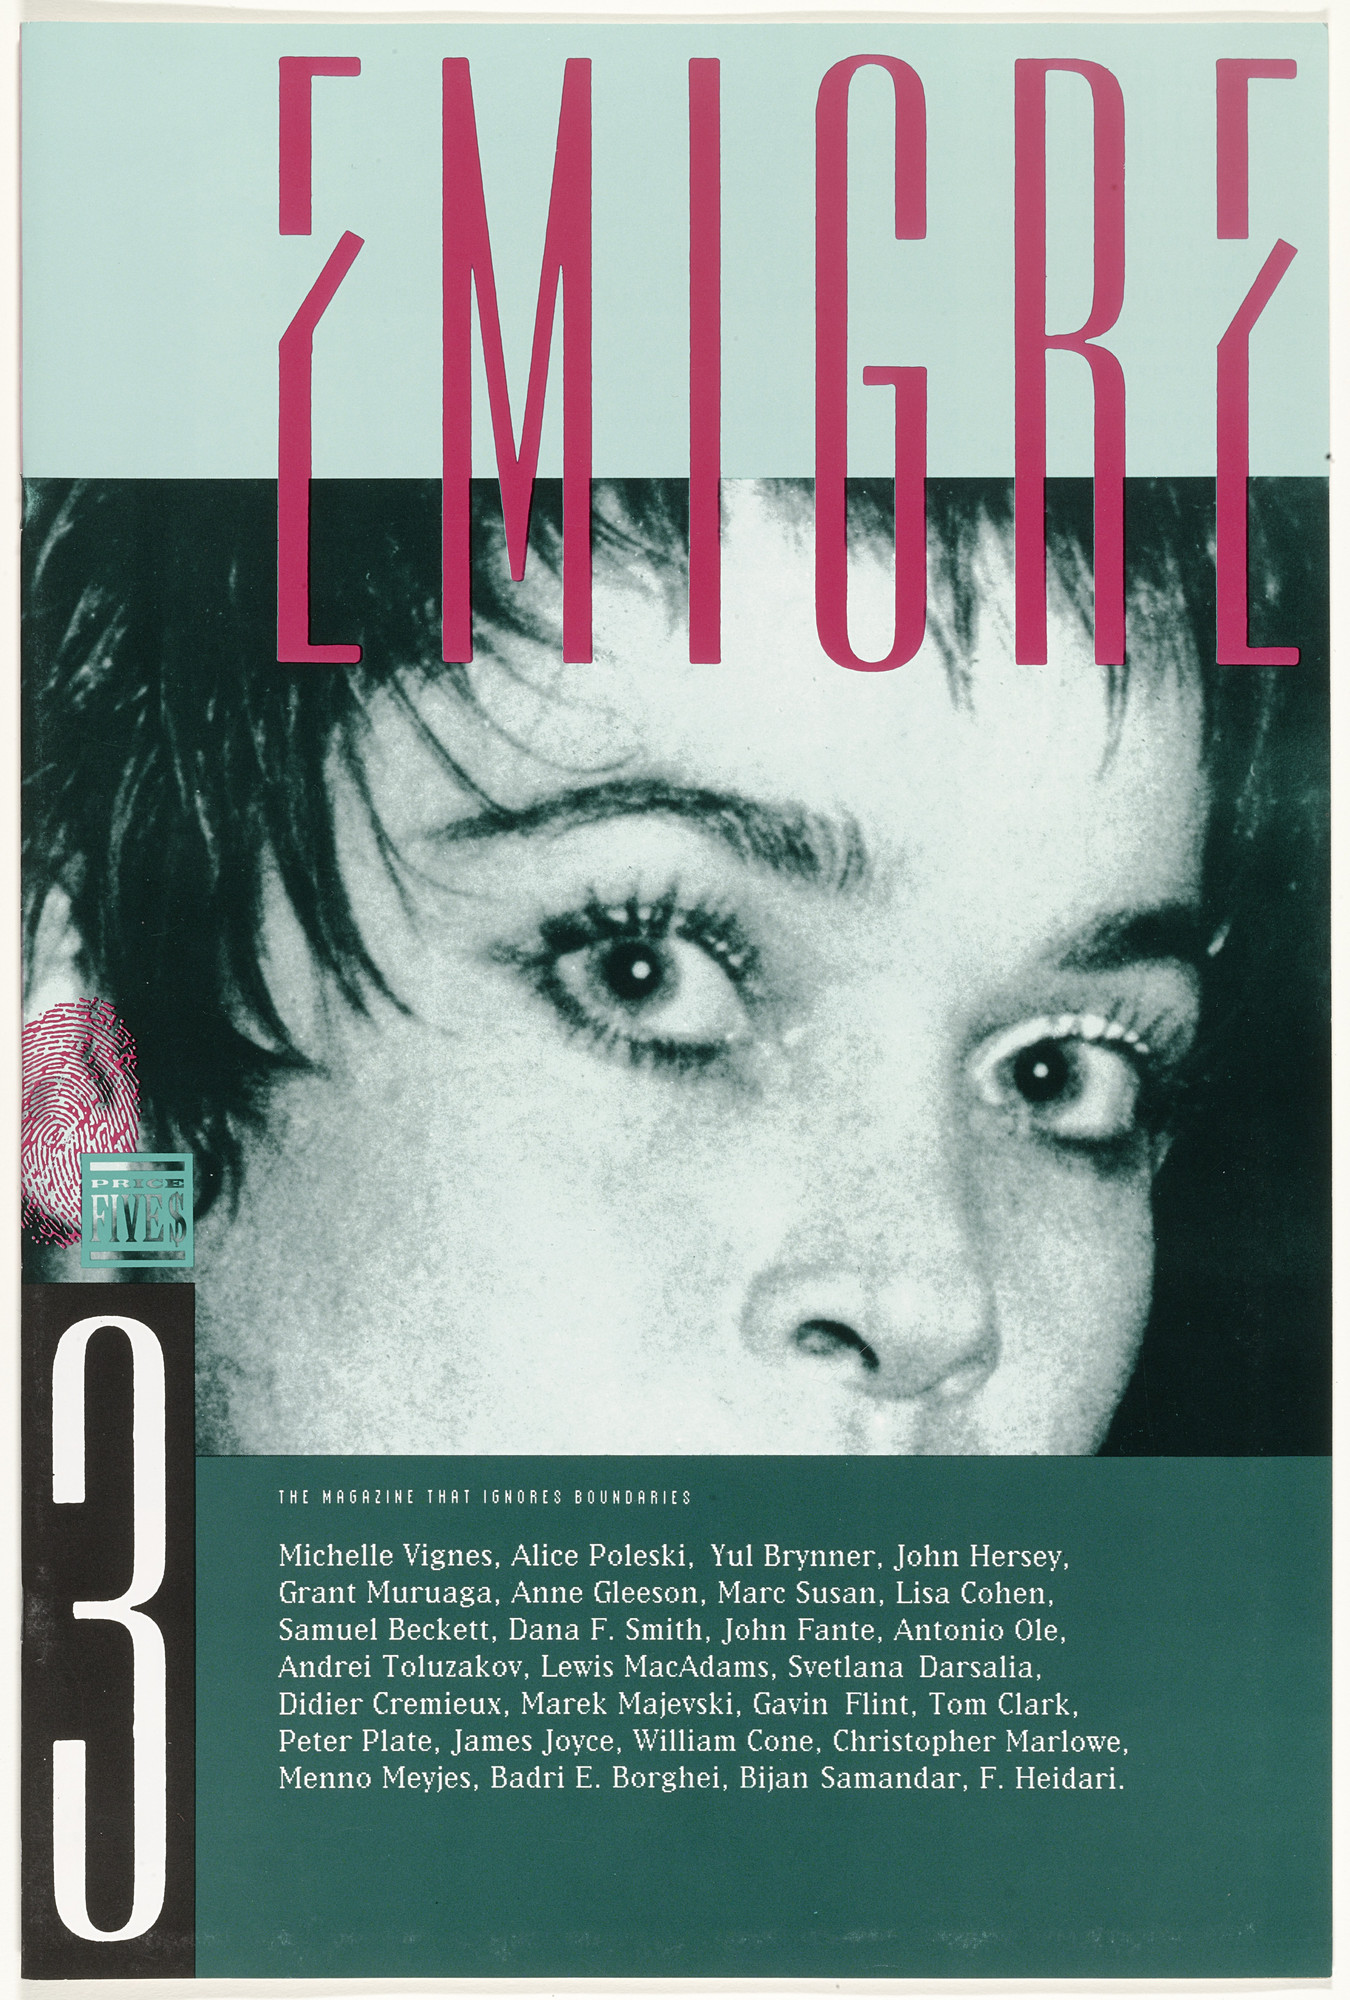 Emigre Inc., Rudy VanderLans, Zuzana Licko. Emigre 3, The Magazine That Ignores Boundaries. 1985